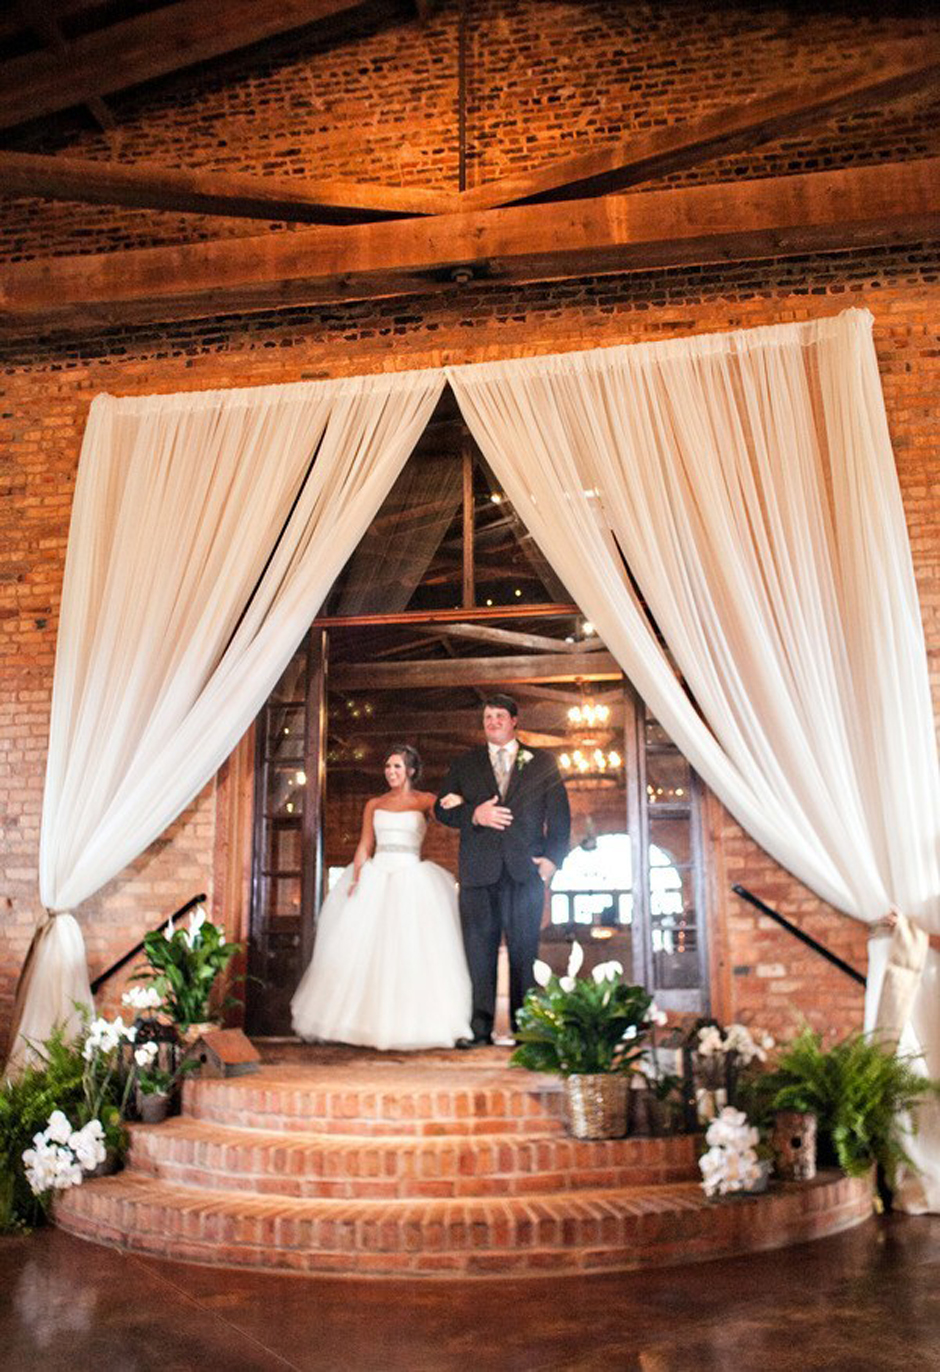 UGA Chapel Wedding and Reception Rentals - Drapery Tables Chairs Tents